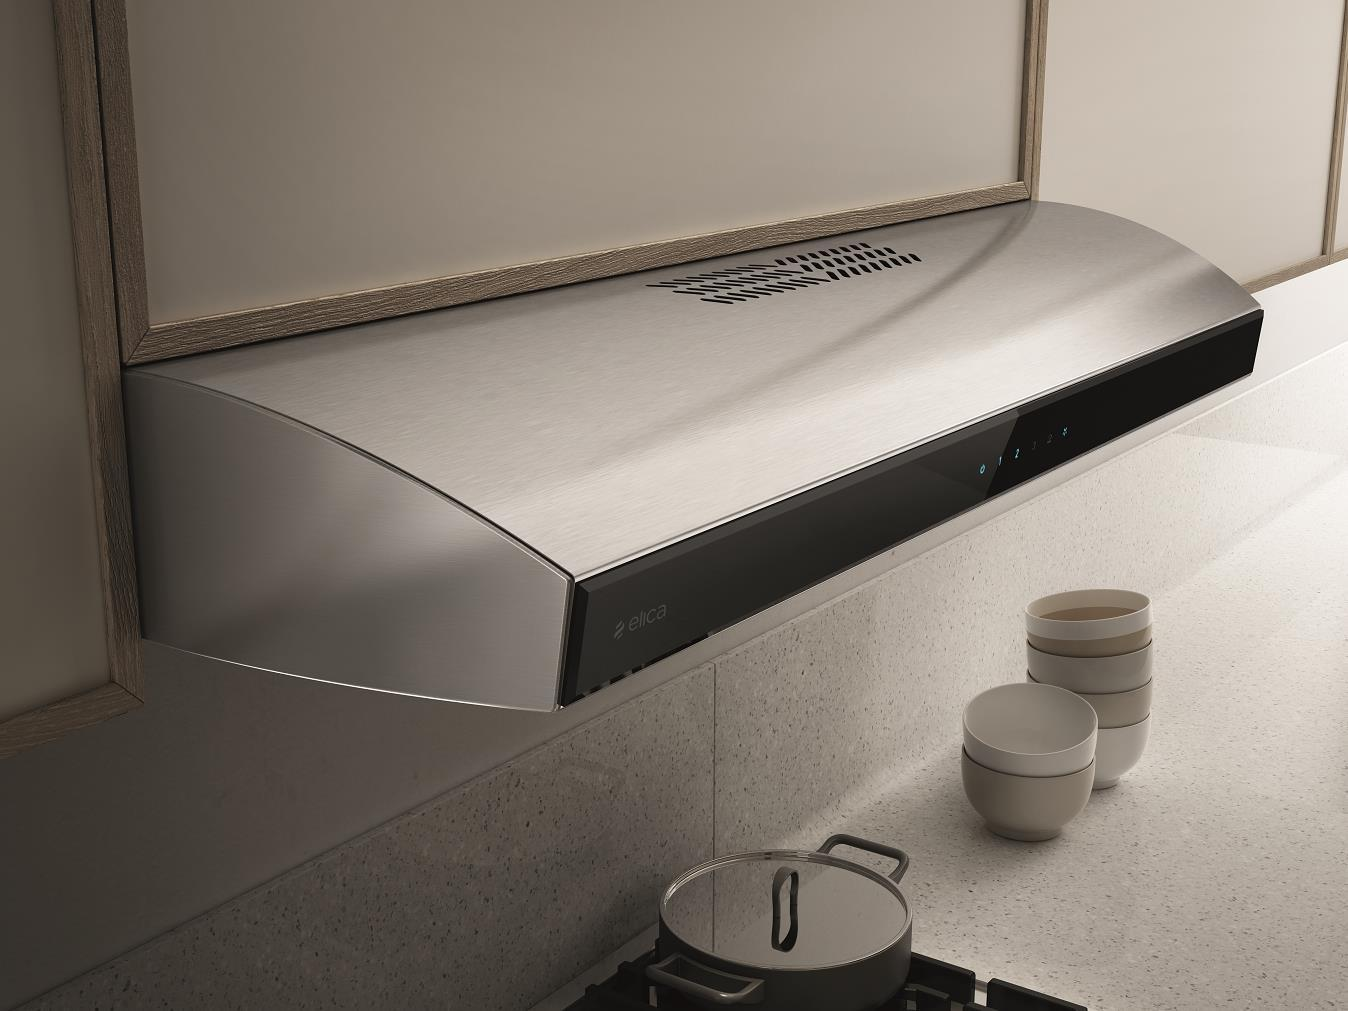 Elica EAI430SS 30 inches Under Cabinet Range Hood with Touch Controls - ALSurplus AL